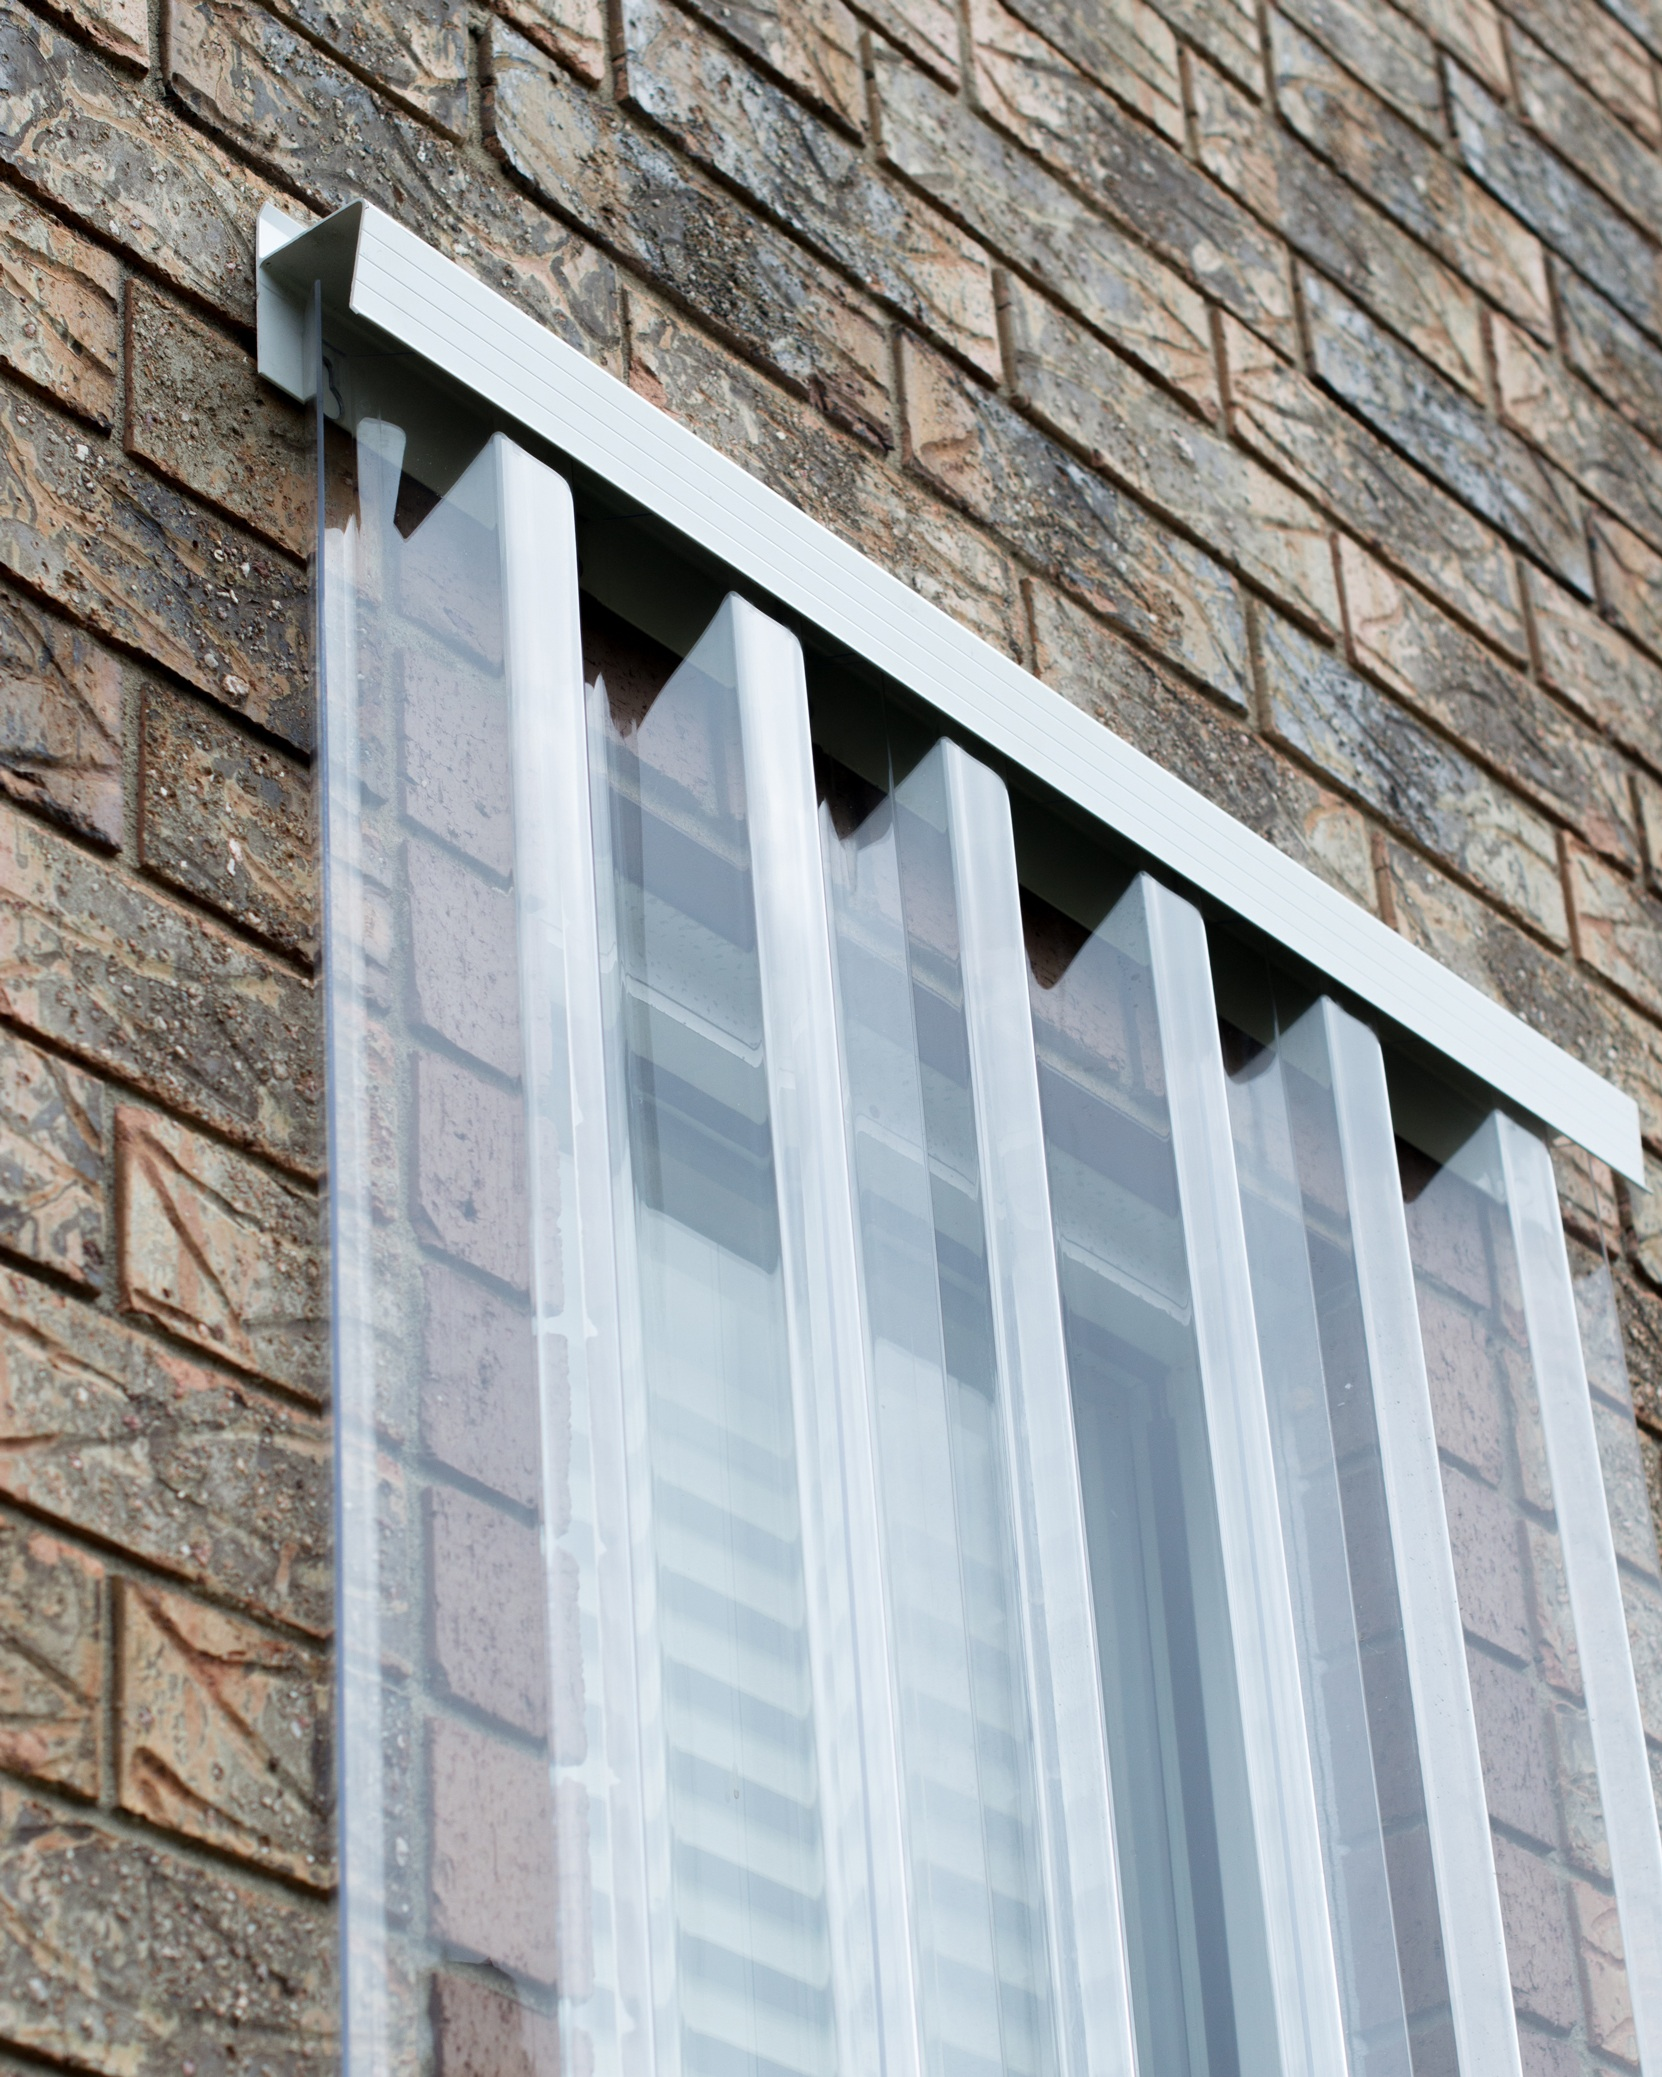 - We manufacture Storm Panels to provide maximum protection that can be installed immediately before the most severe weather. Storm panels are provided in aluminum or galvanized steel. Protect your property